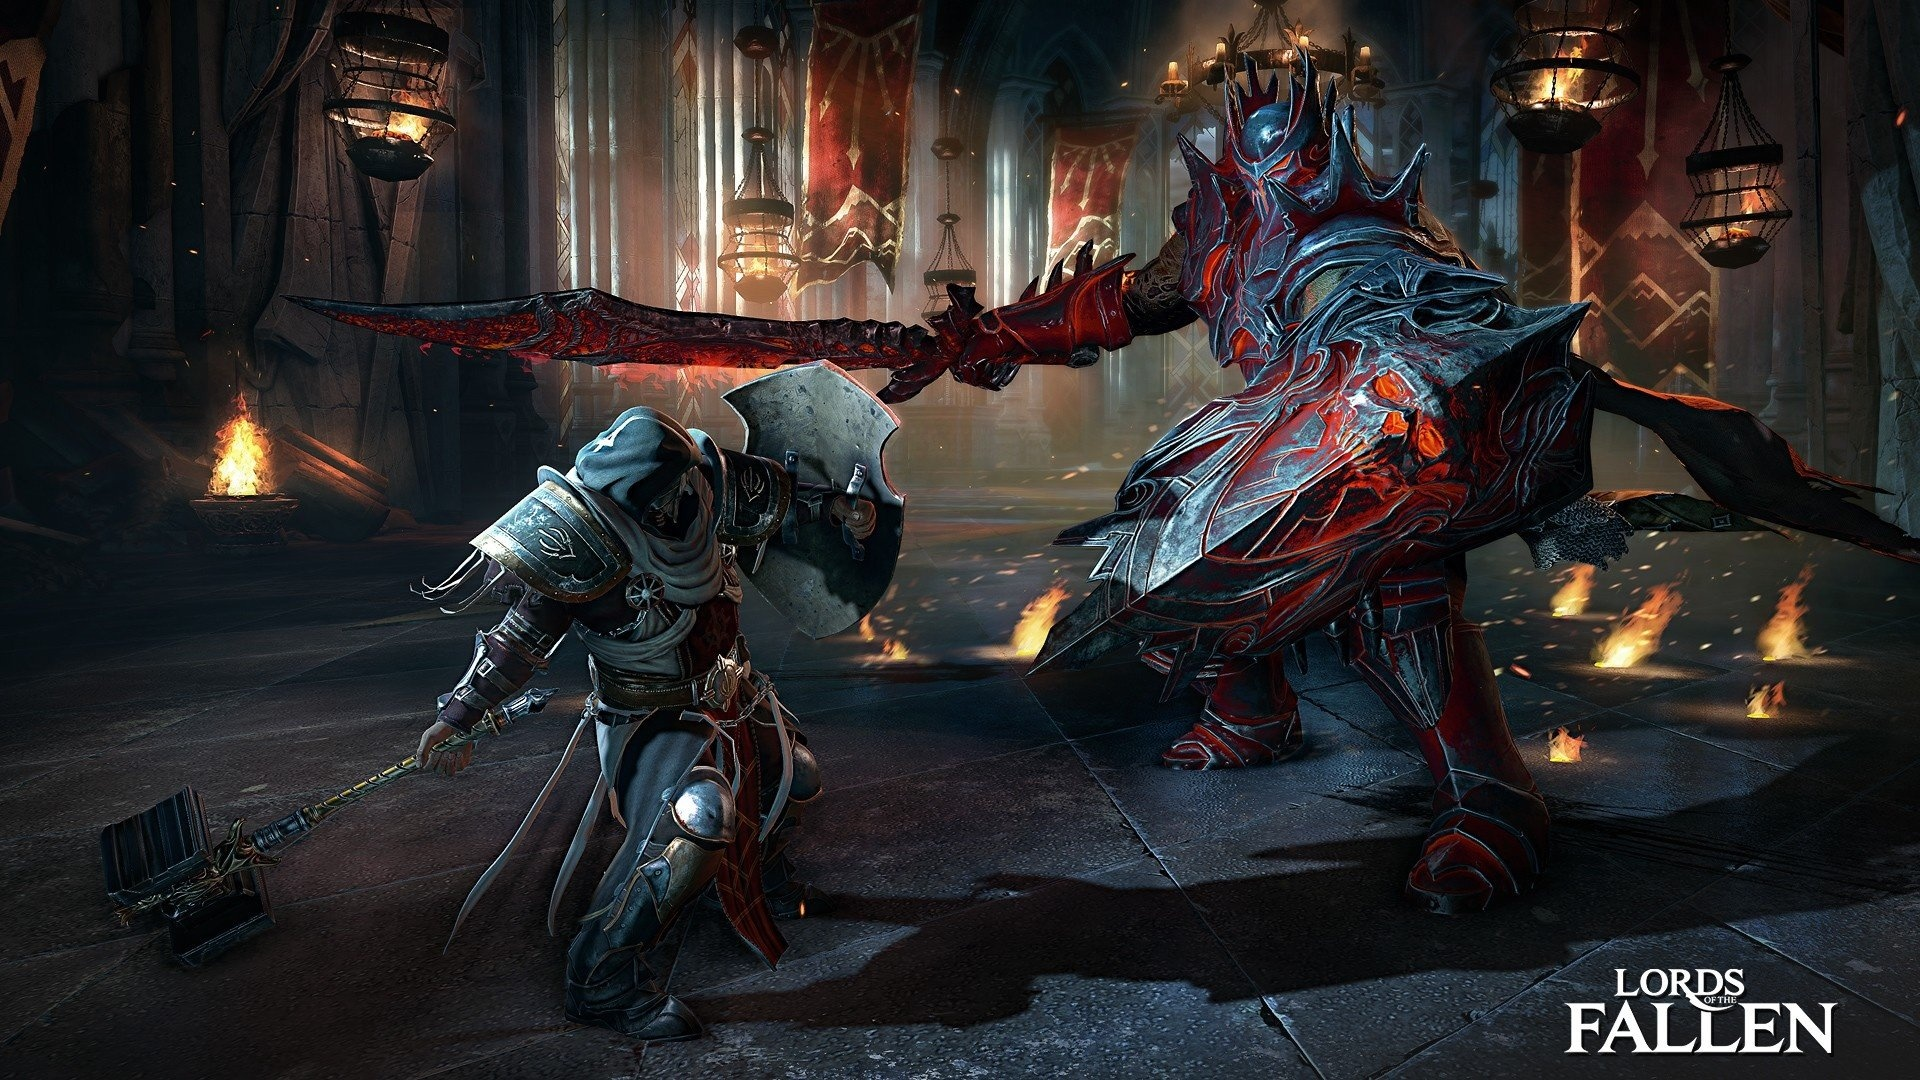 Lords of the fallen is dark souls meets borderlands…